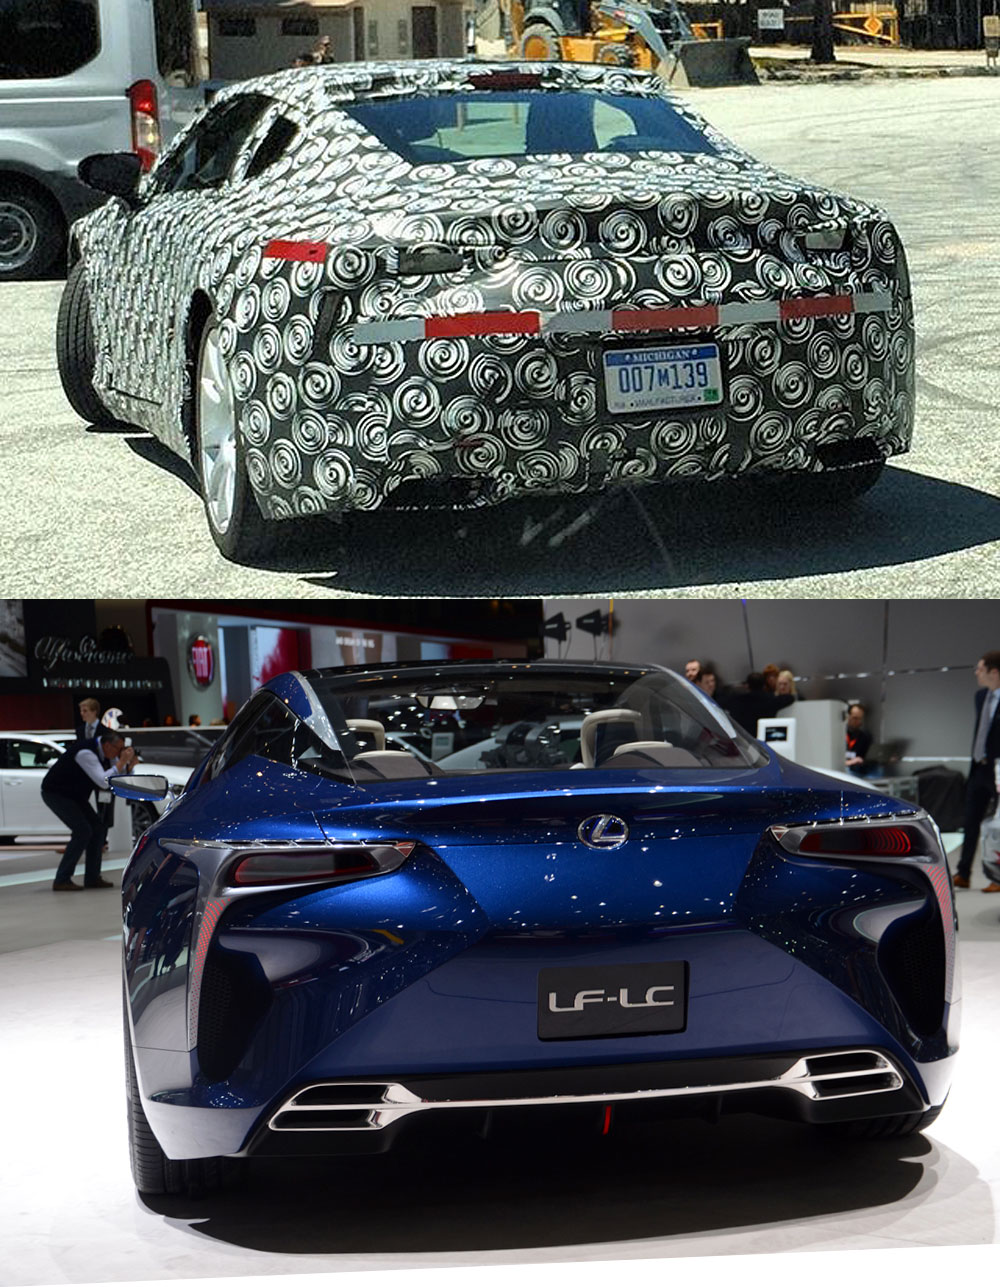 Lexus LF-LC vs LC production